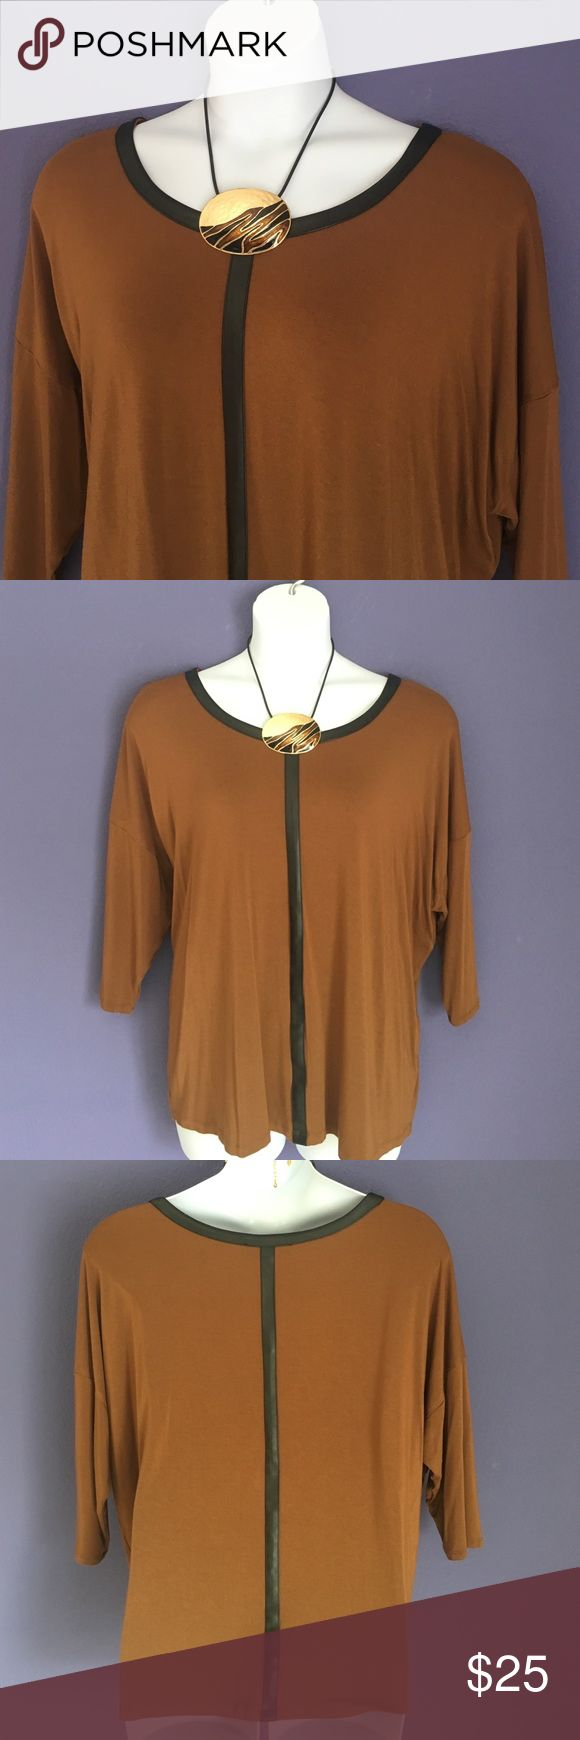 """Philosophy Brown Top w/Leather Trim This top is amazing with black pants or leggings and boots.  The faux leather trim outlines the neckline, front and back for a contemporary look.  Material:  95% Rayon/5% Spandex.  Measurements:  Length - 27.5""""/Bust - 30""""/Waist - 27.5"""" Philosophy Tops"""